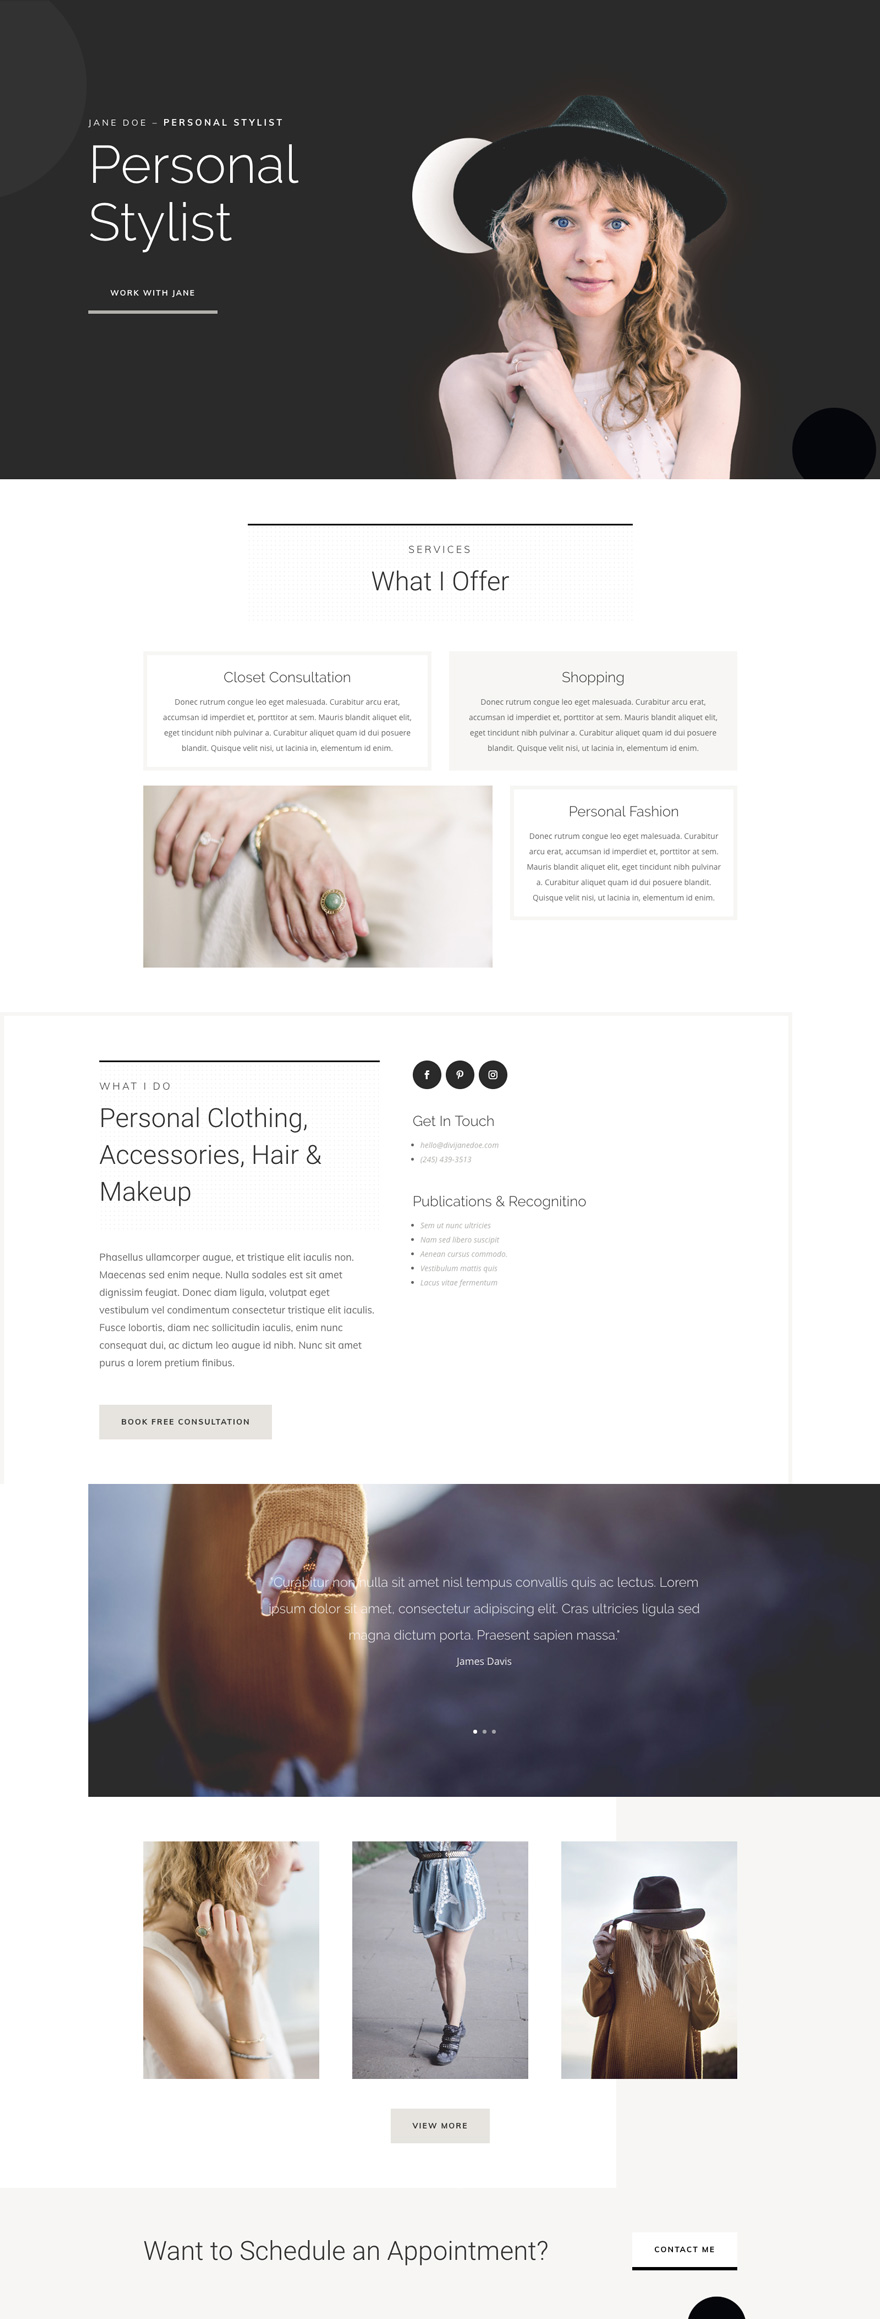 Personal stylist Home Page